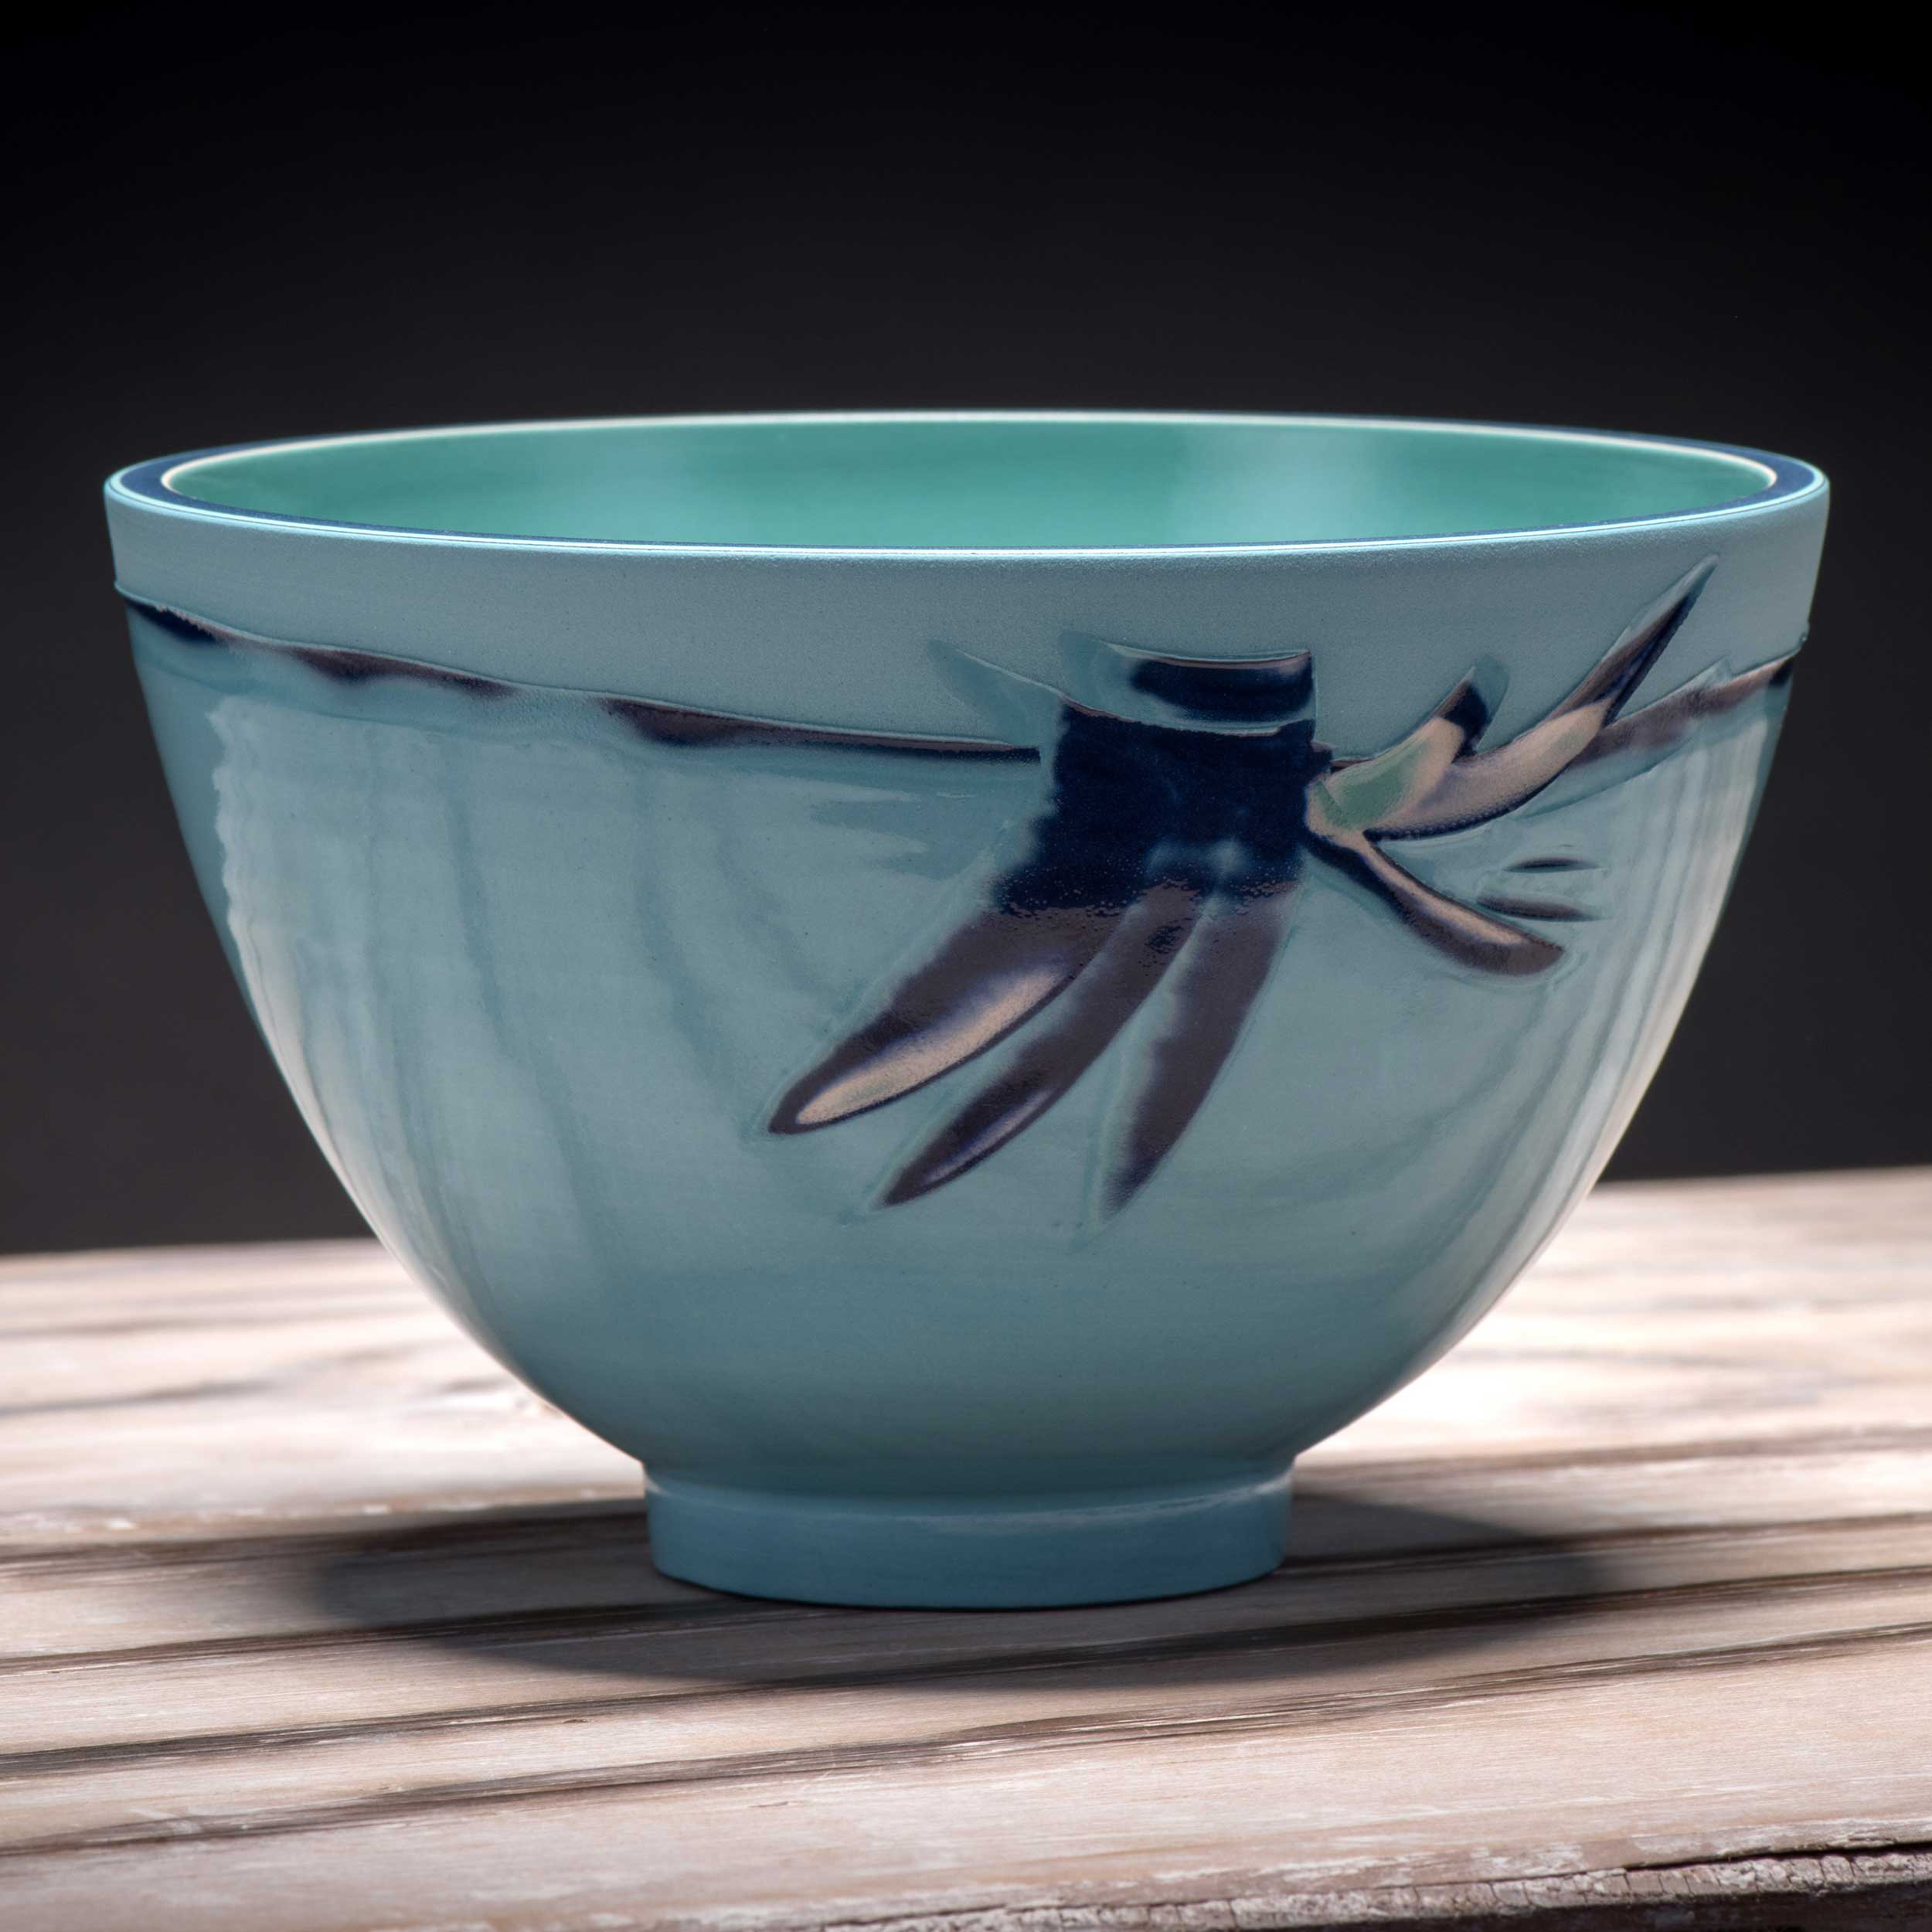 Copy of Ceramic Rice Bowl Turquoisee Blue by Rowena Gilbert Coast Series